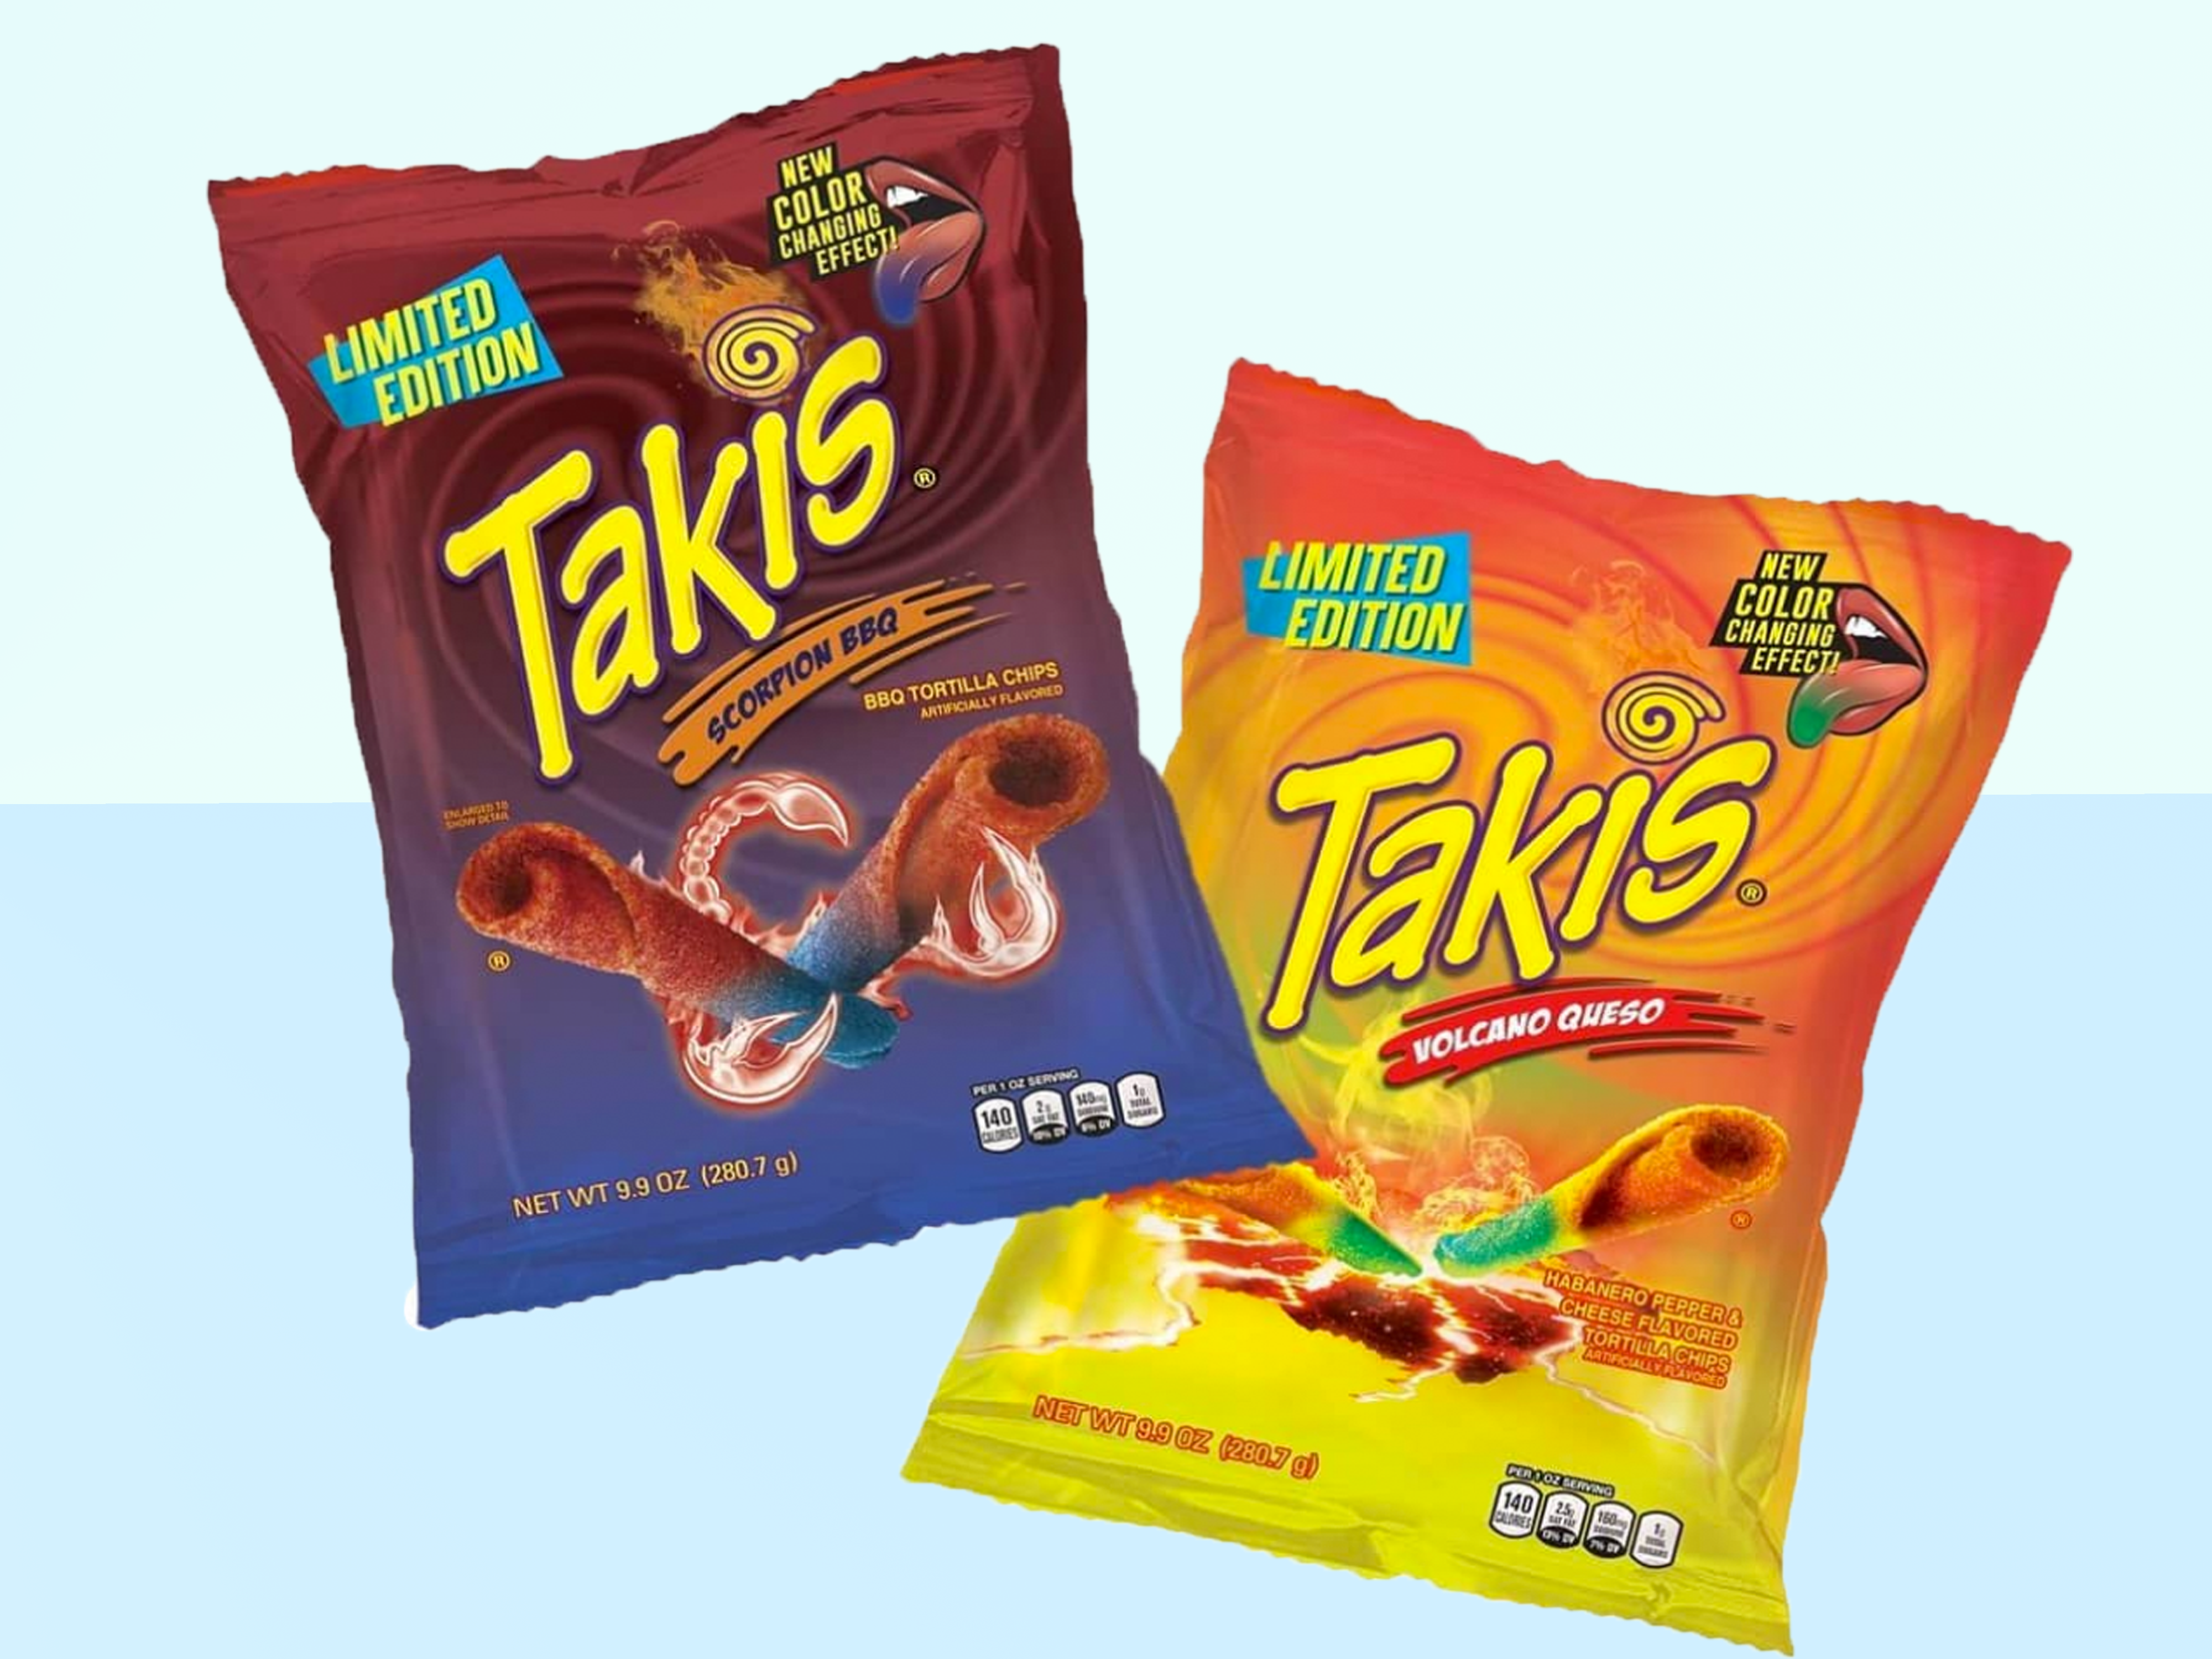 color-change-takis